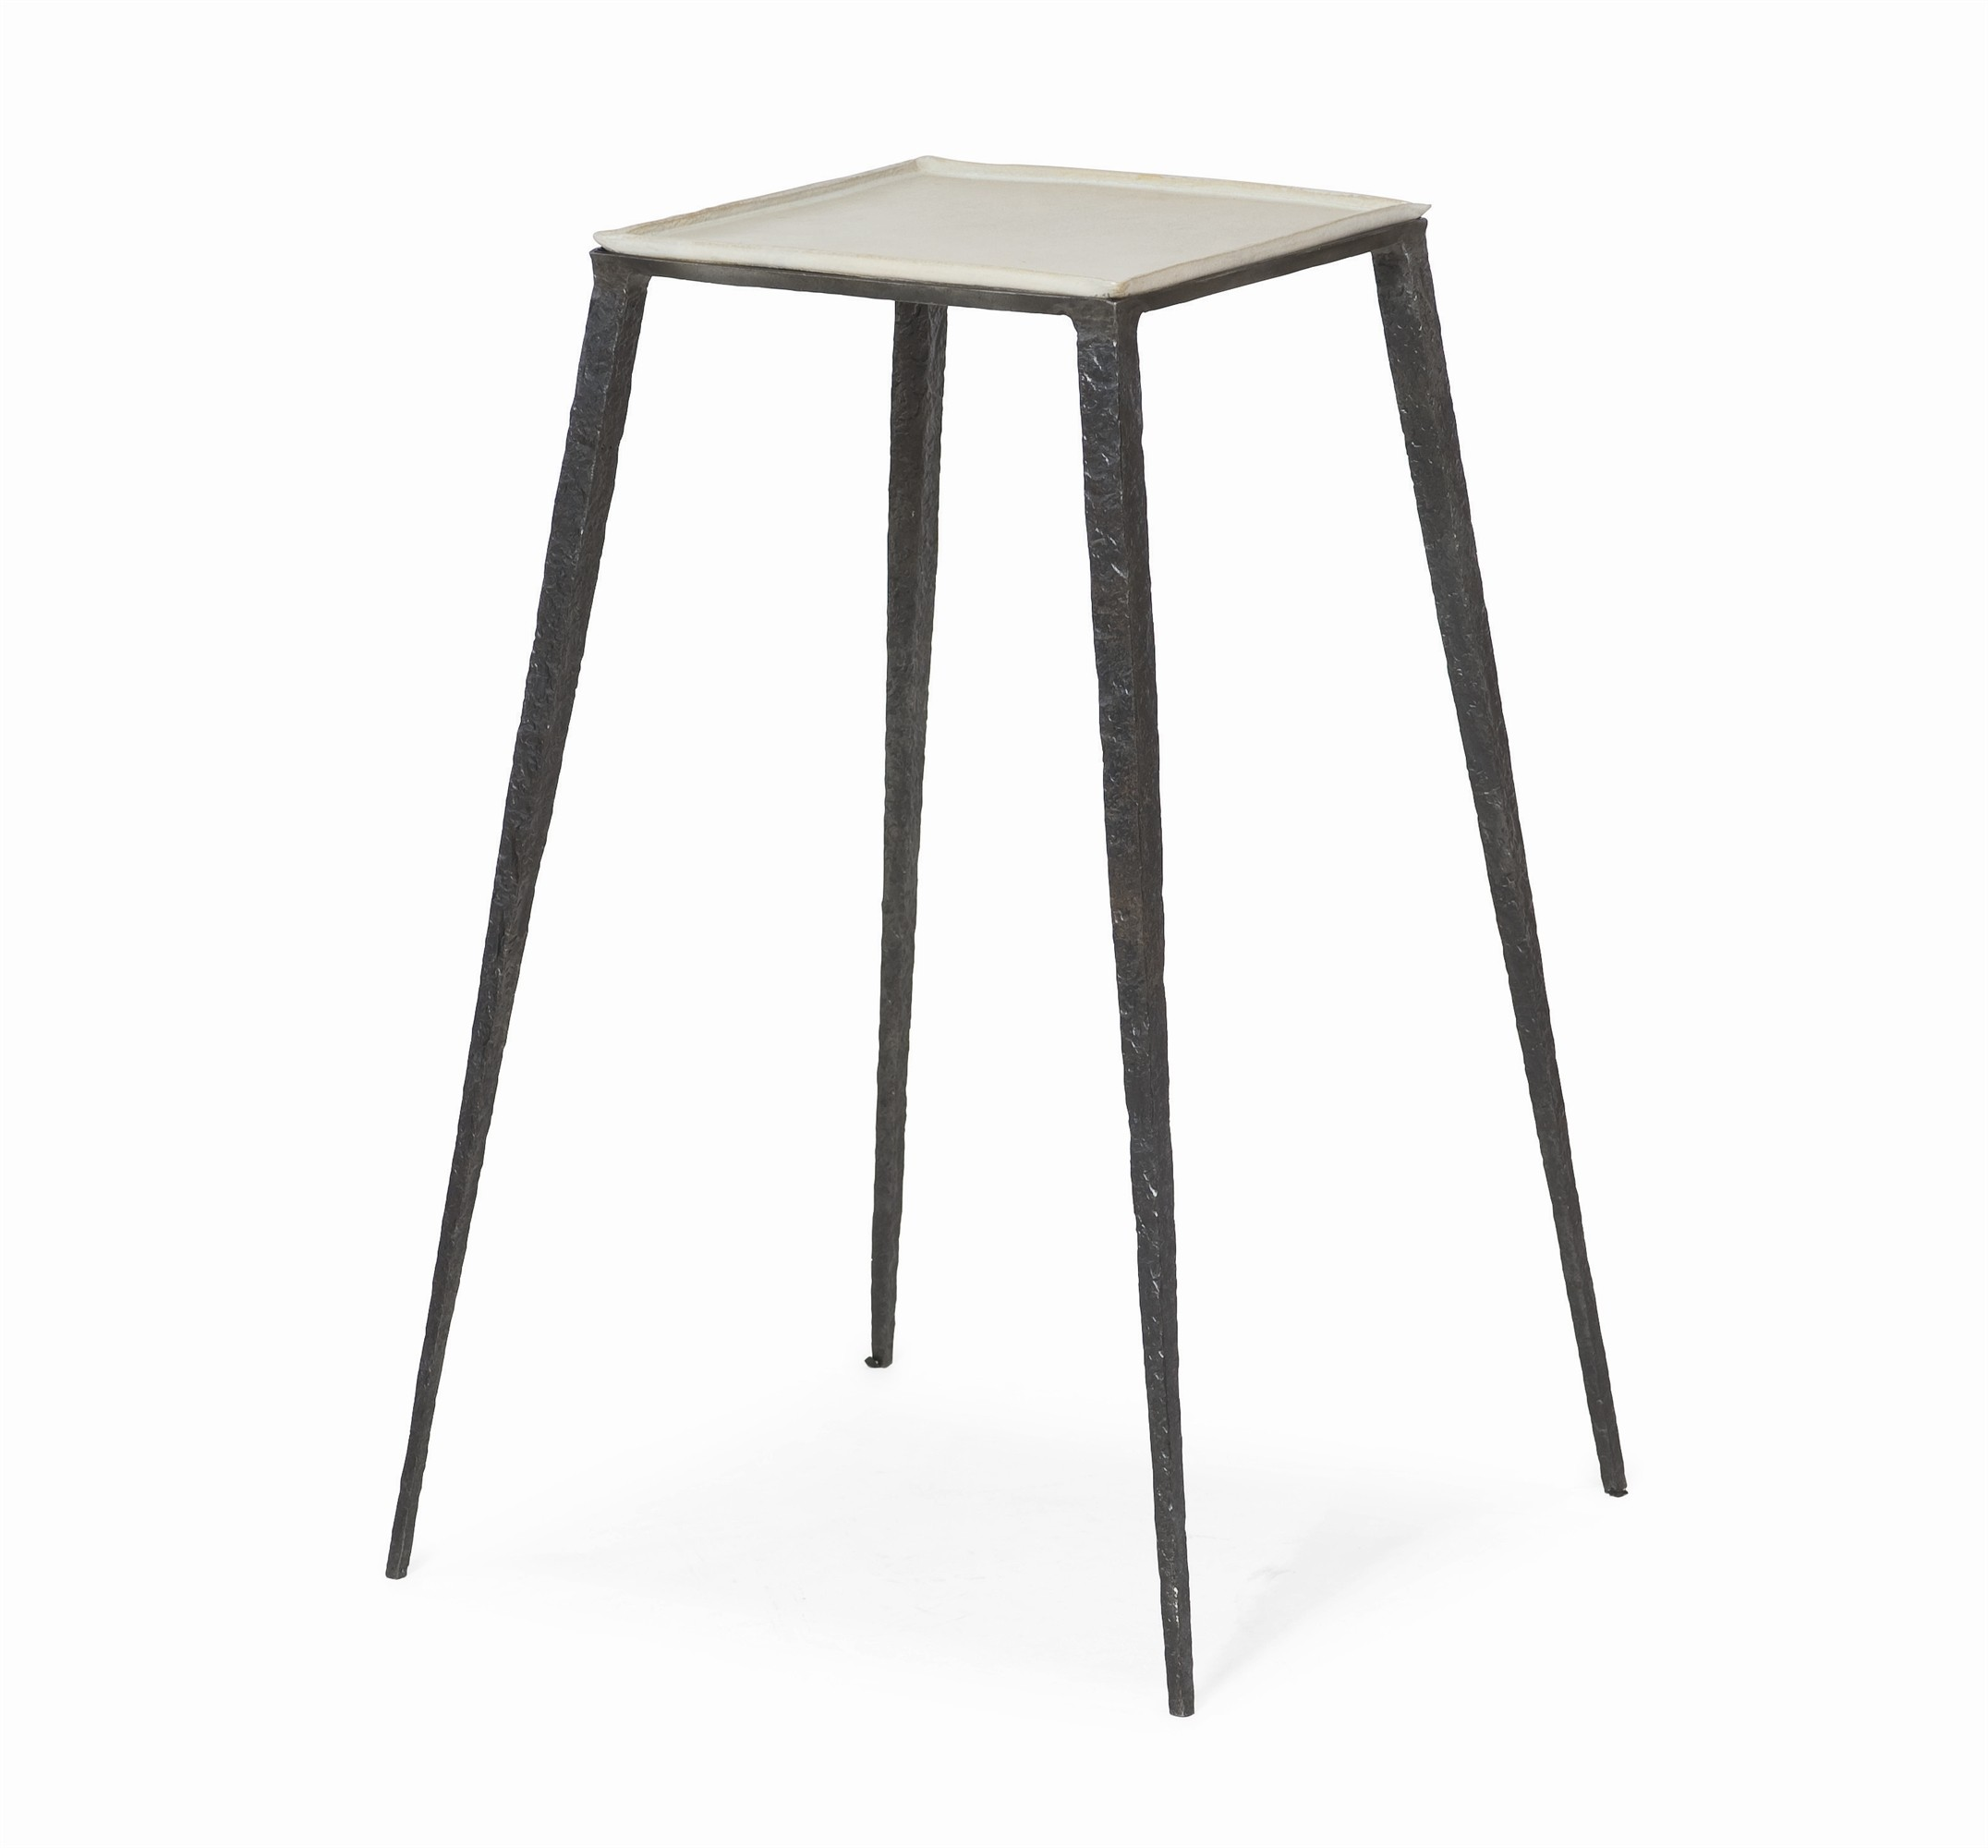 Lift Square Accent Table